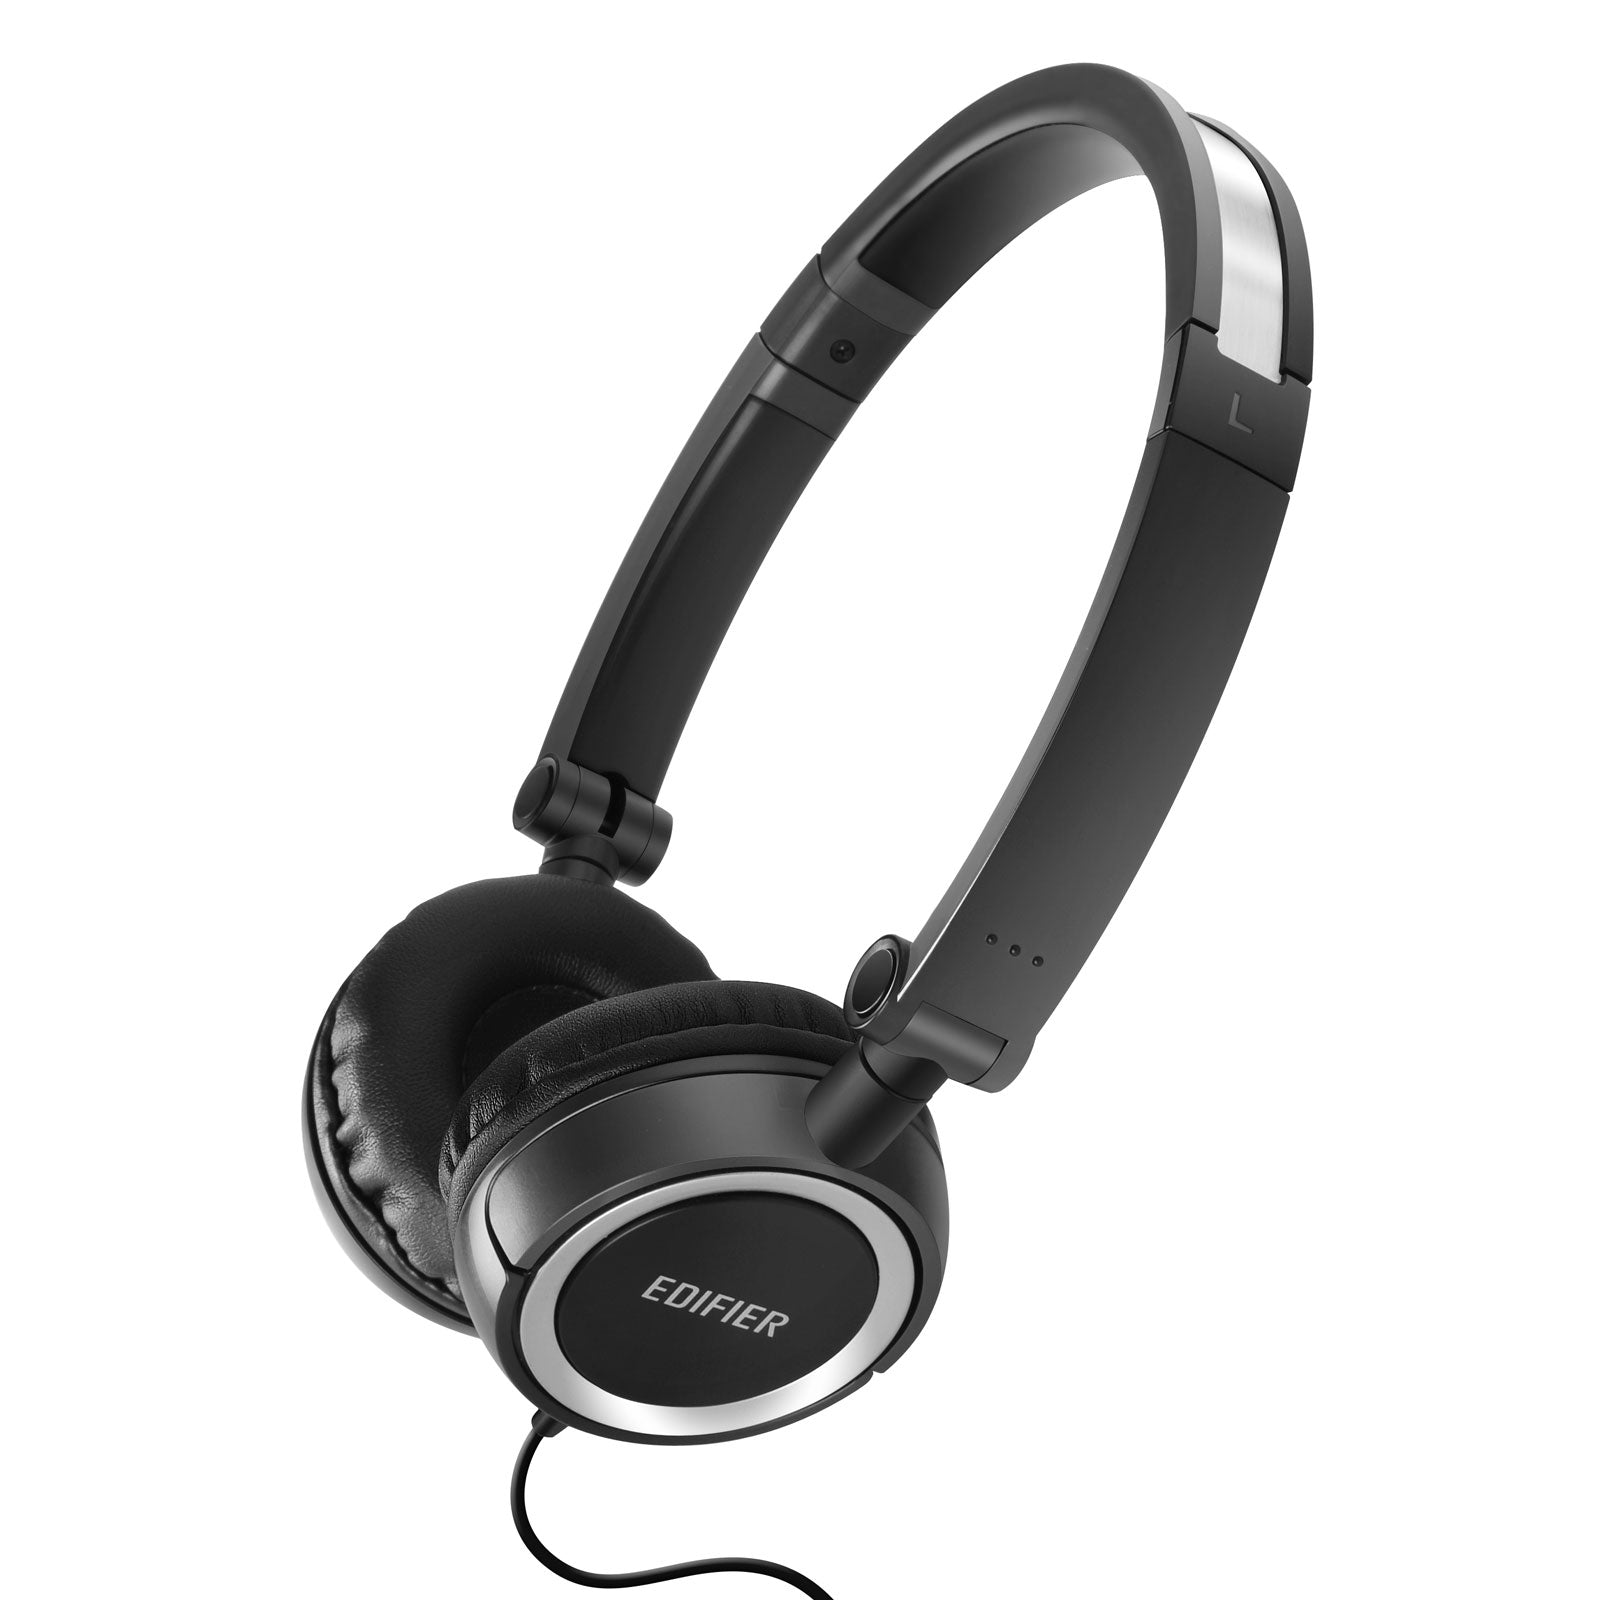 Edifier H650 On-Ear Headphones - Foldable and Lightweight Headphone